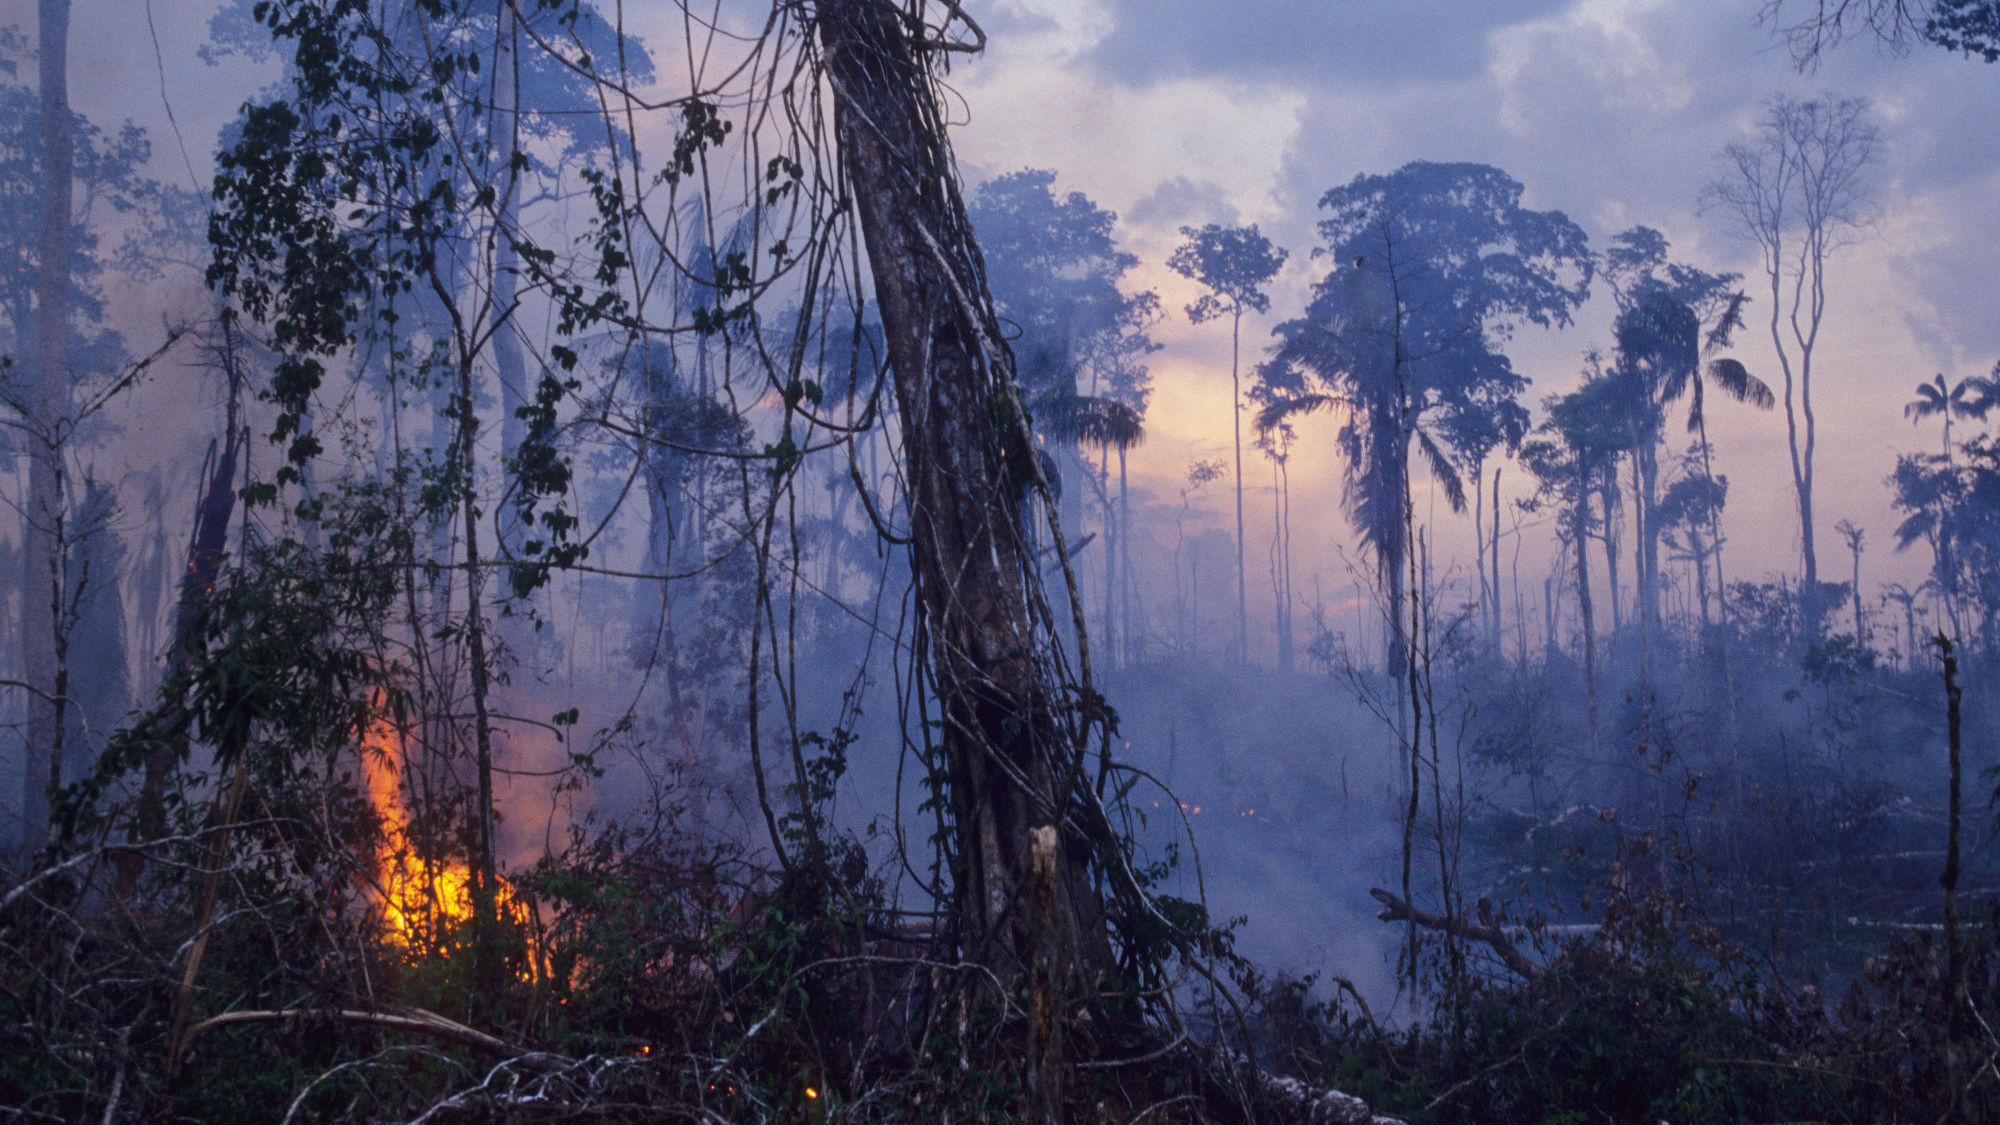 The Amazon rainforest is still burning, and the destruction is devastating